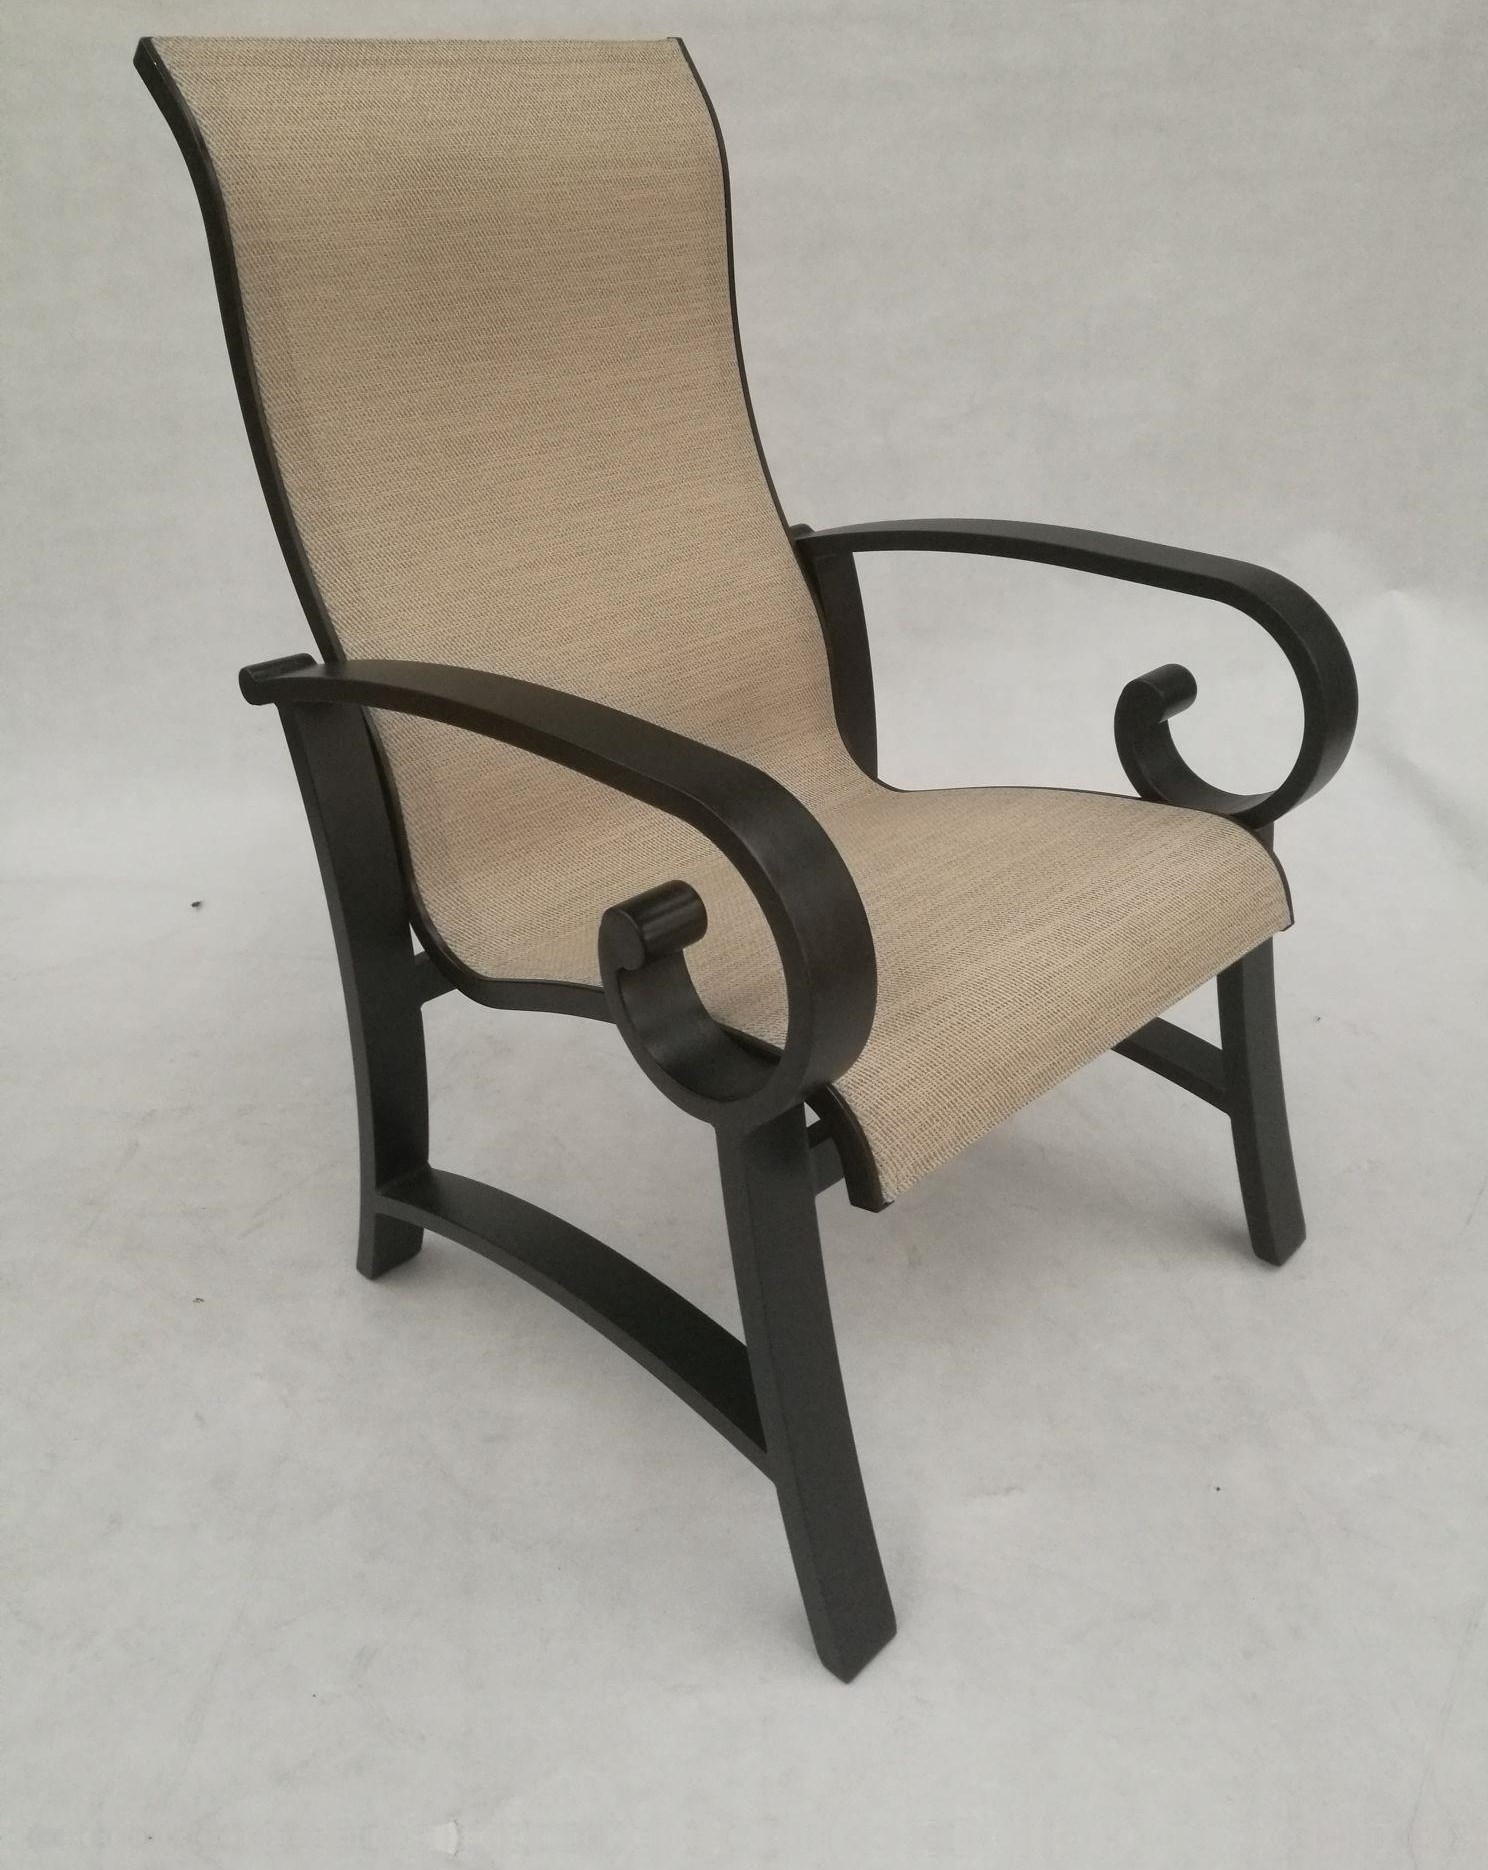 Crown Garden Sling Dining Chair by Crown Garden Furniture at Johnny Janosik